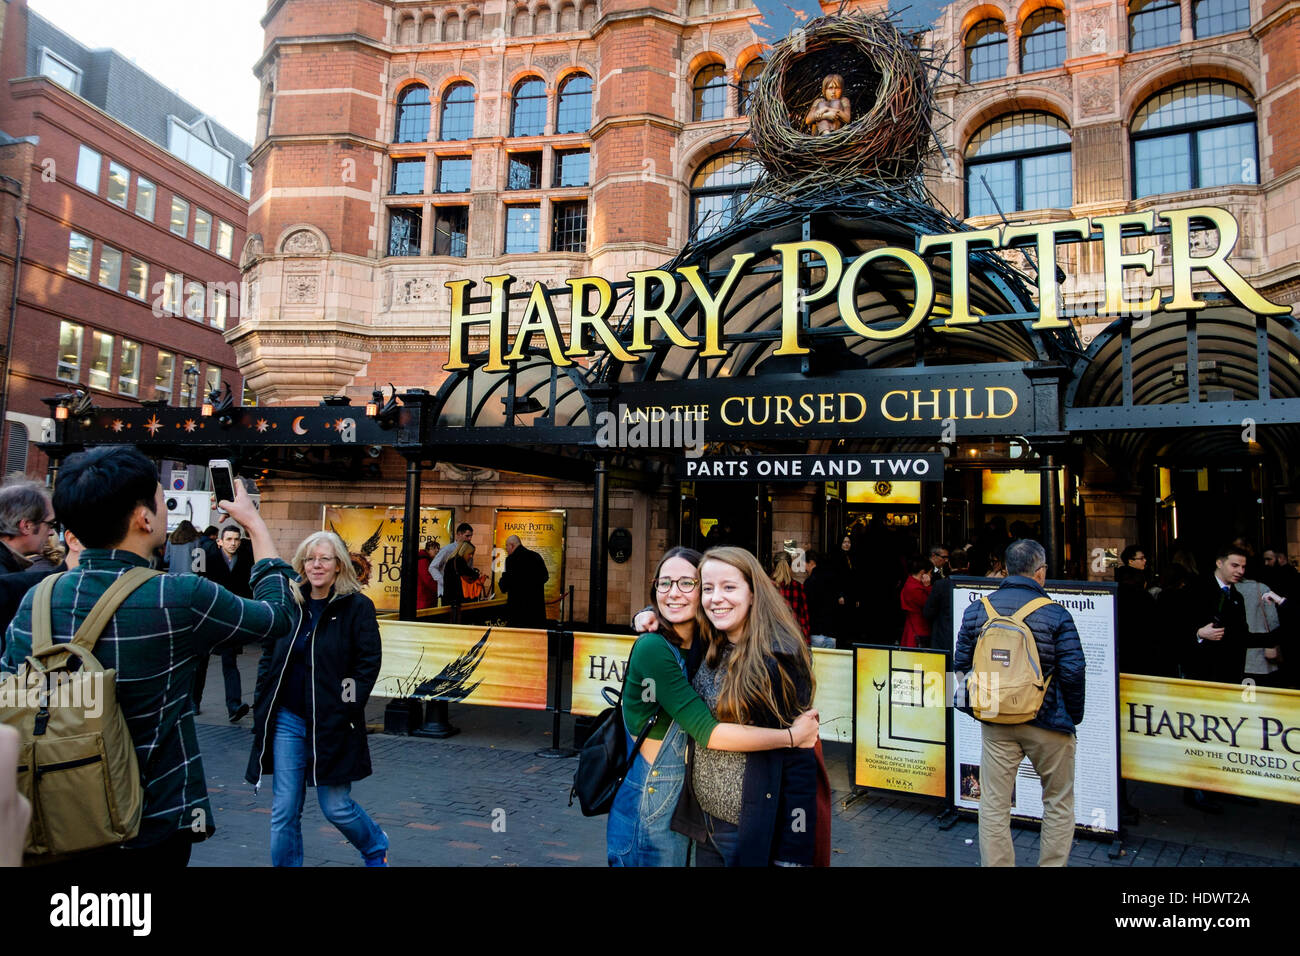 Visitors to London pose for photographs in front of Harry Potter and The Cursed Child at the Palace Theatre, London, - Stock Image